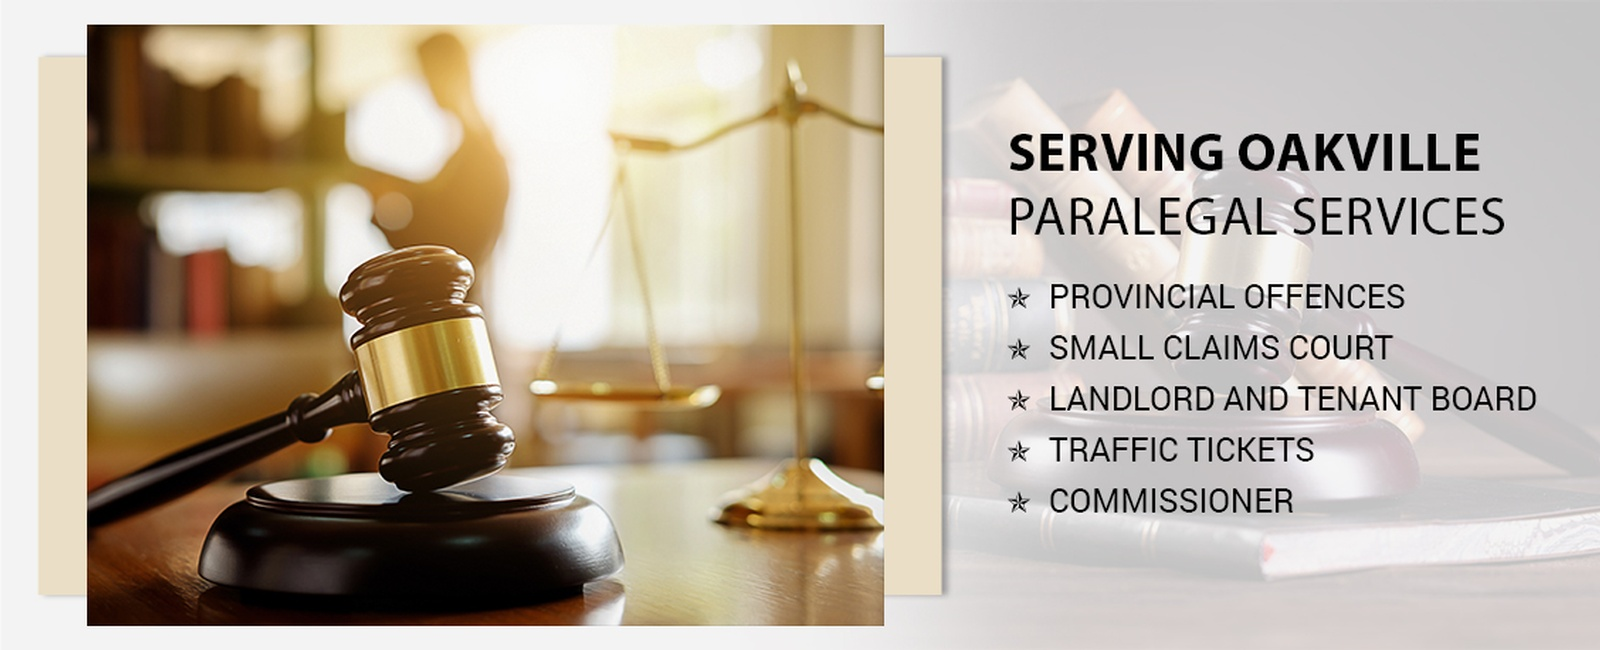 Paralegal services in Oakville